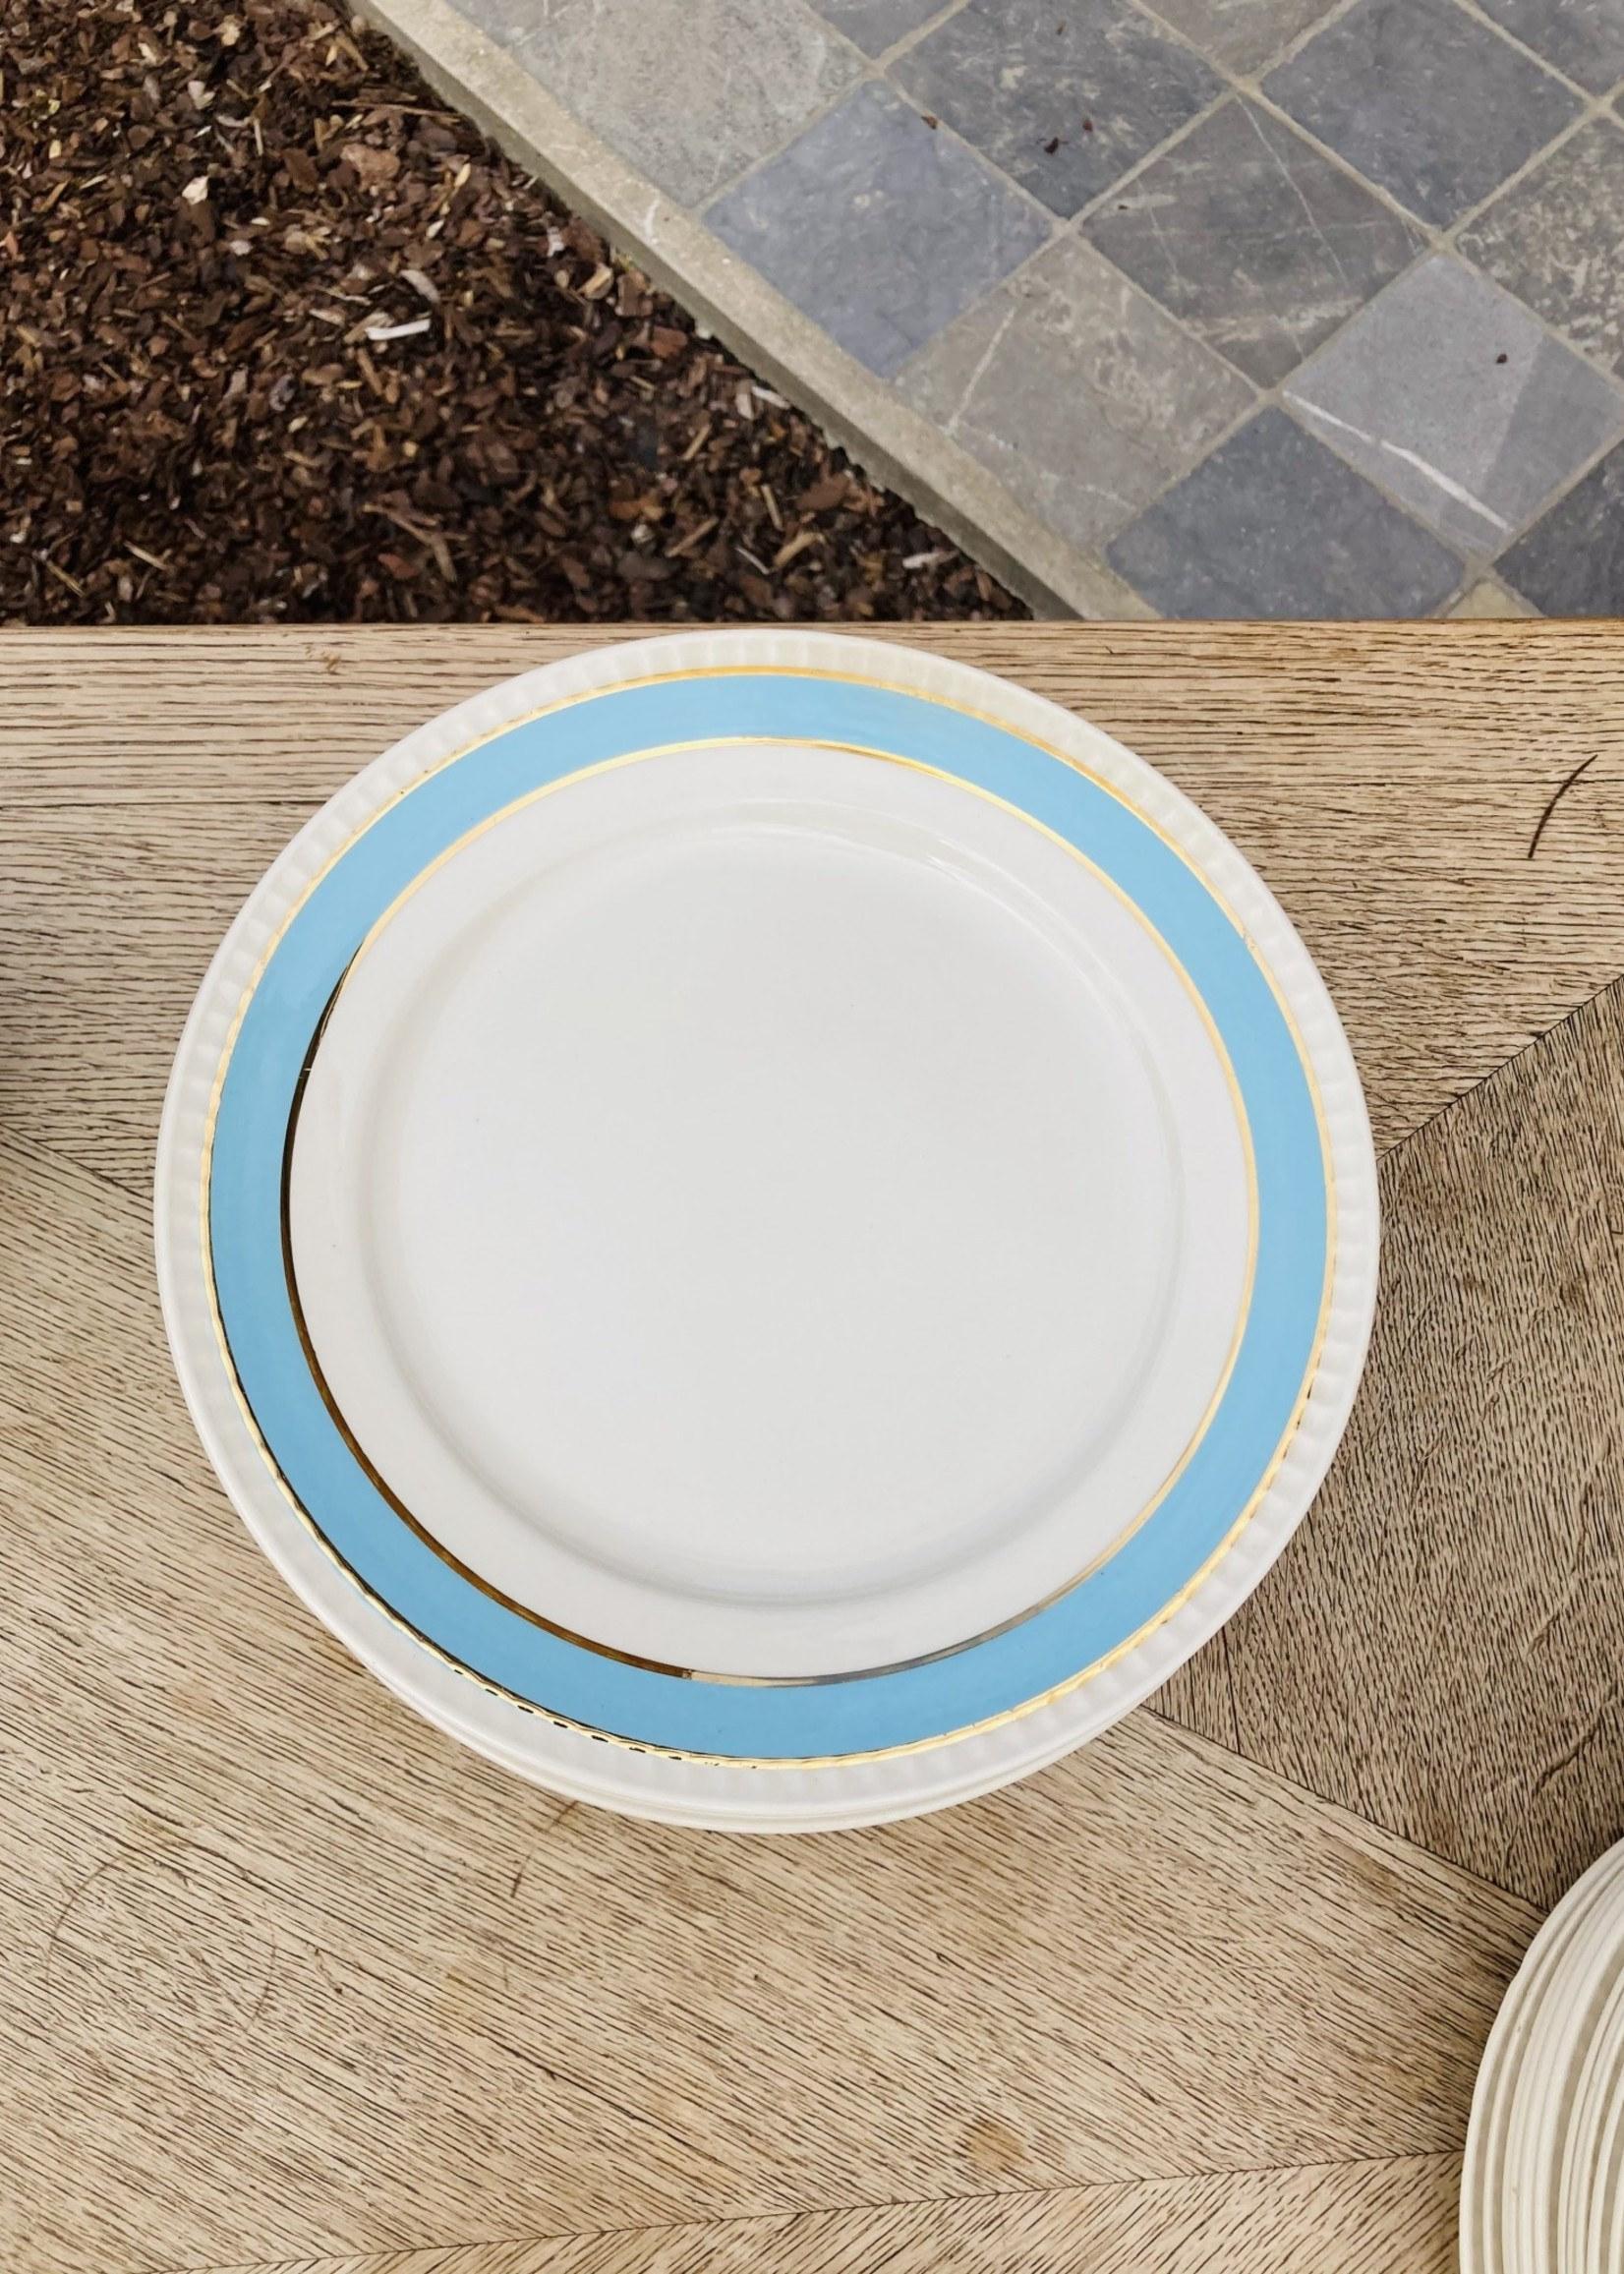 Boch Large plates with light blue border and 2 golden lines